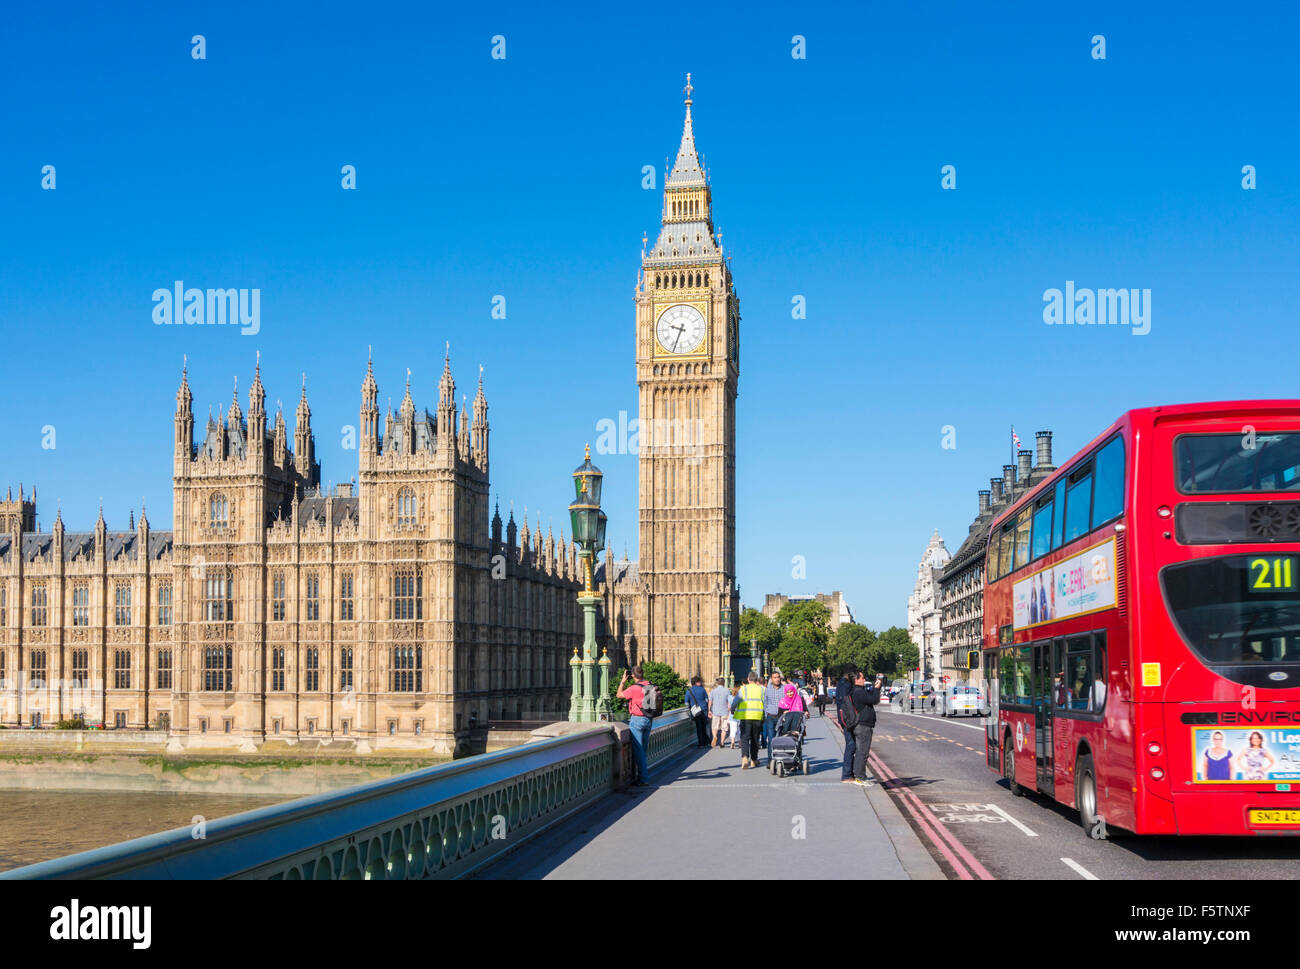 Red bus passing Big Ben Houses of Parliament and Westminster bridge over the River Thames City of London England - Stock Image